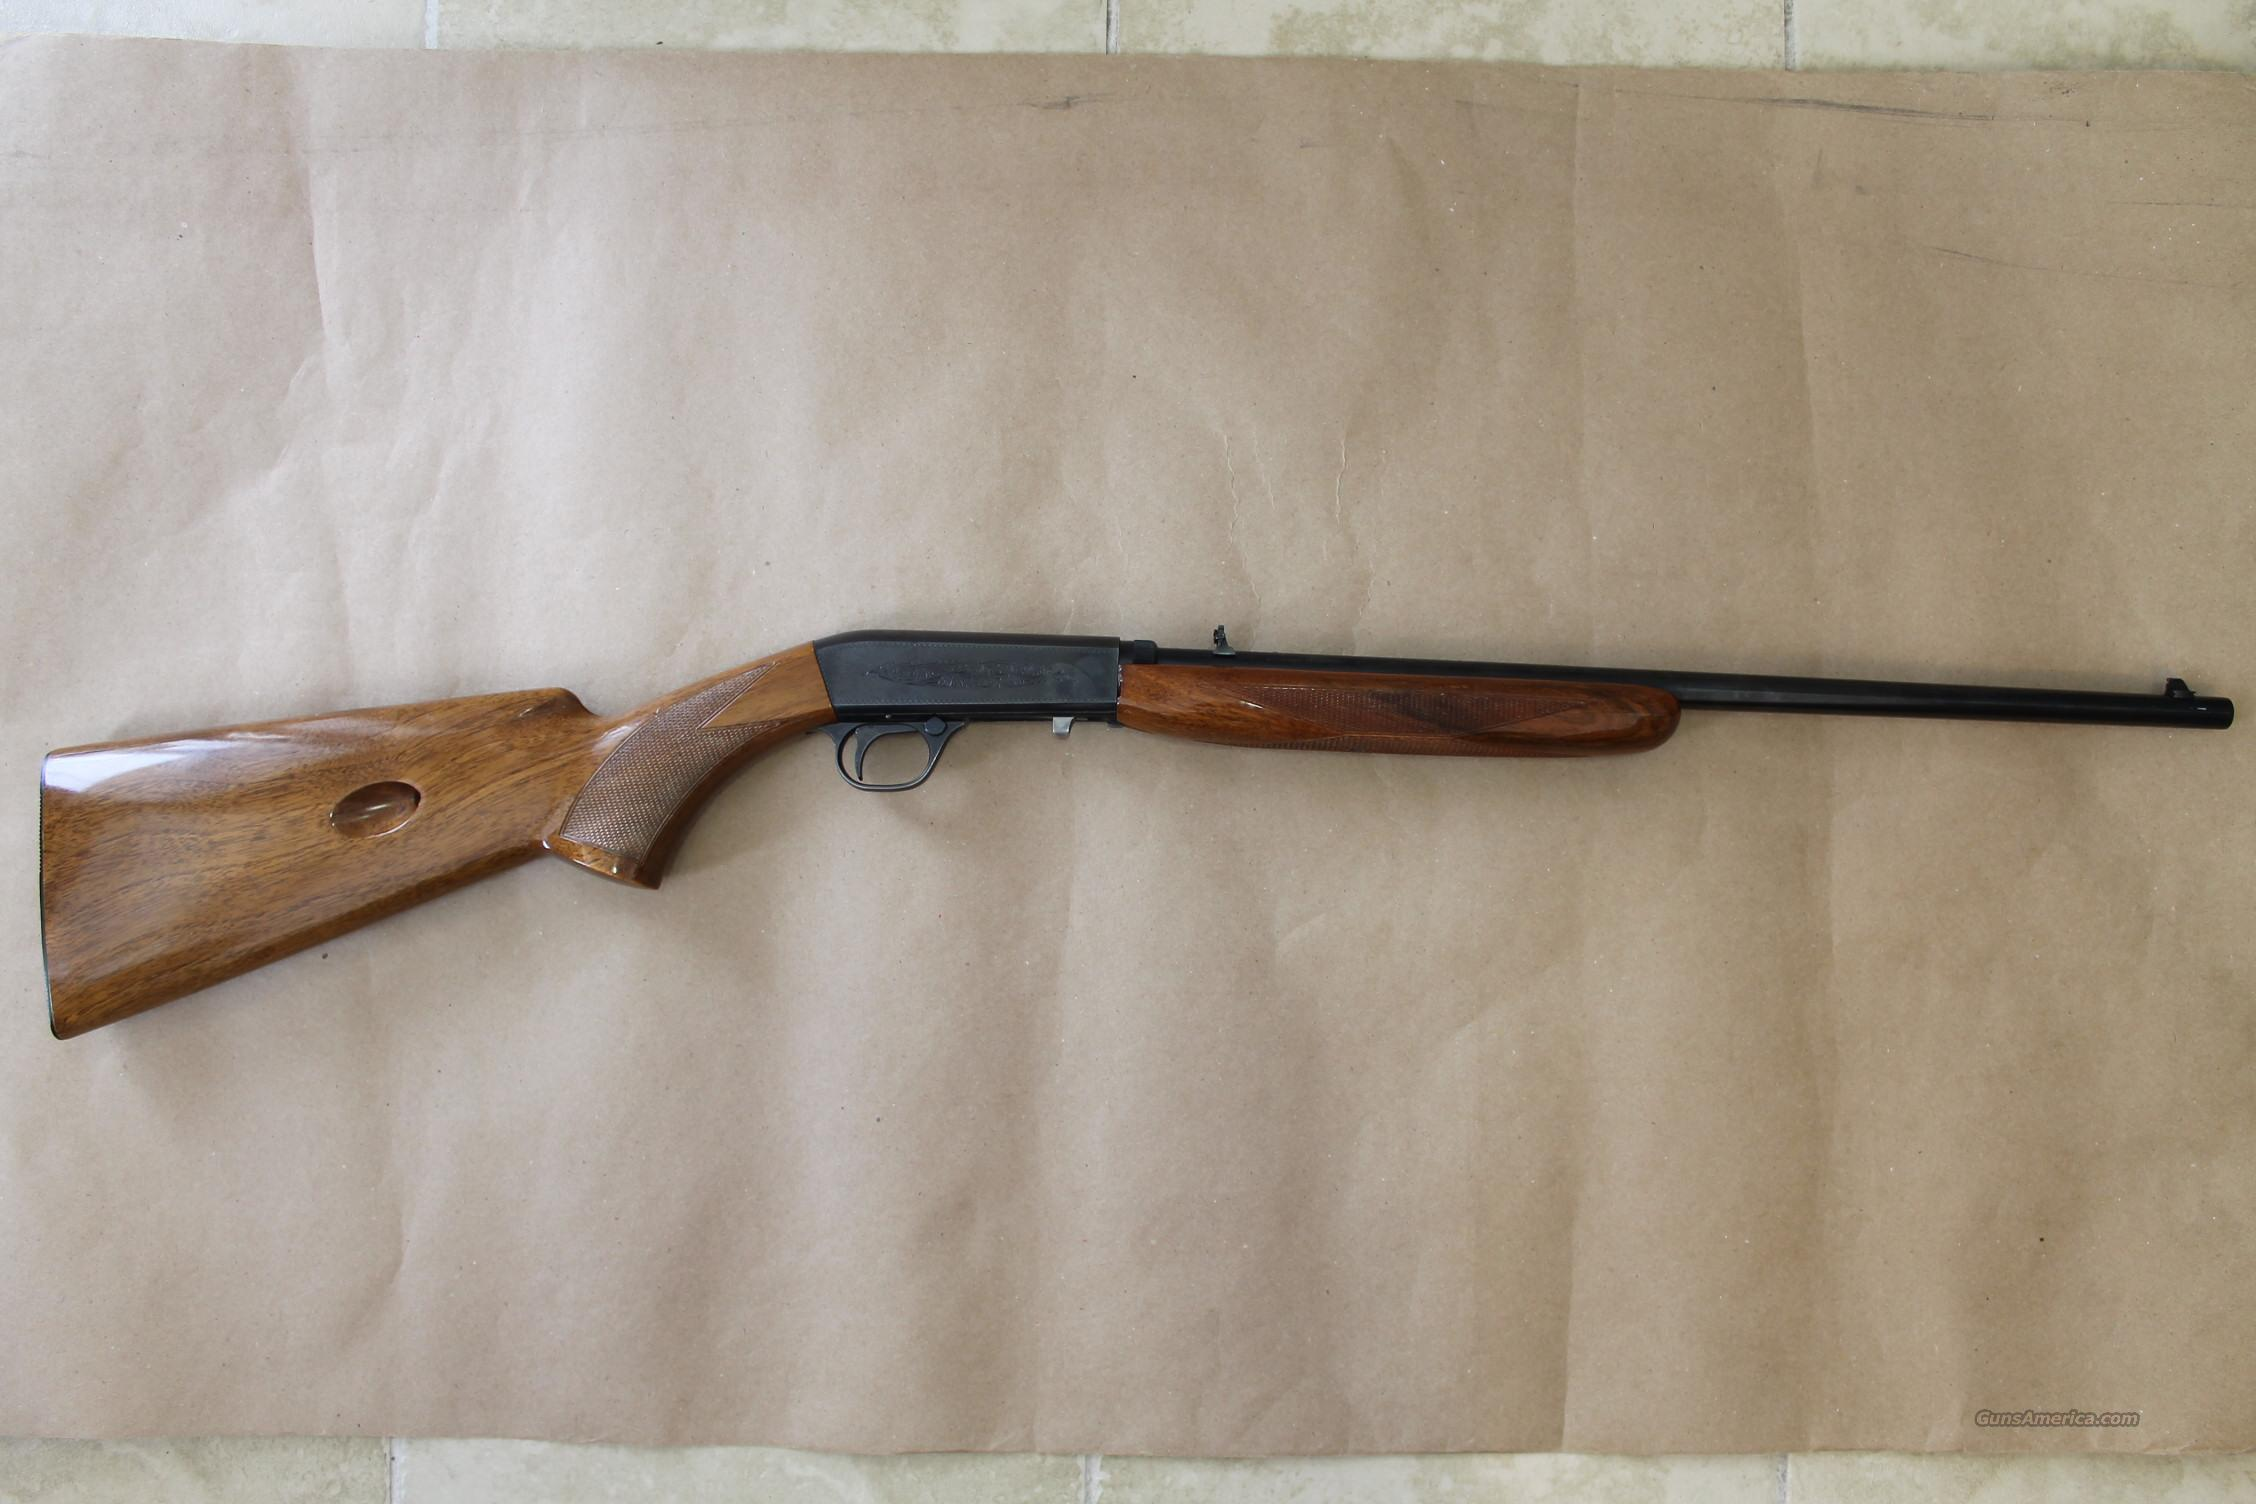 1967 BELGIUM BROWNING SA-22, GRADE I,  TAKE DOWN .22LR SEMI-AUTO RIFLE!!!  Guns > Rifles > Browning Rifles > Semi Auto > Hunting